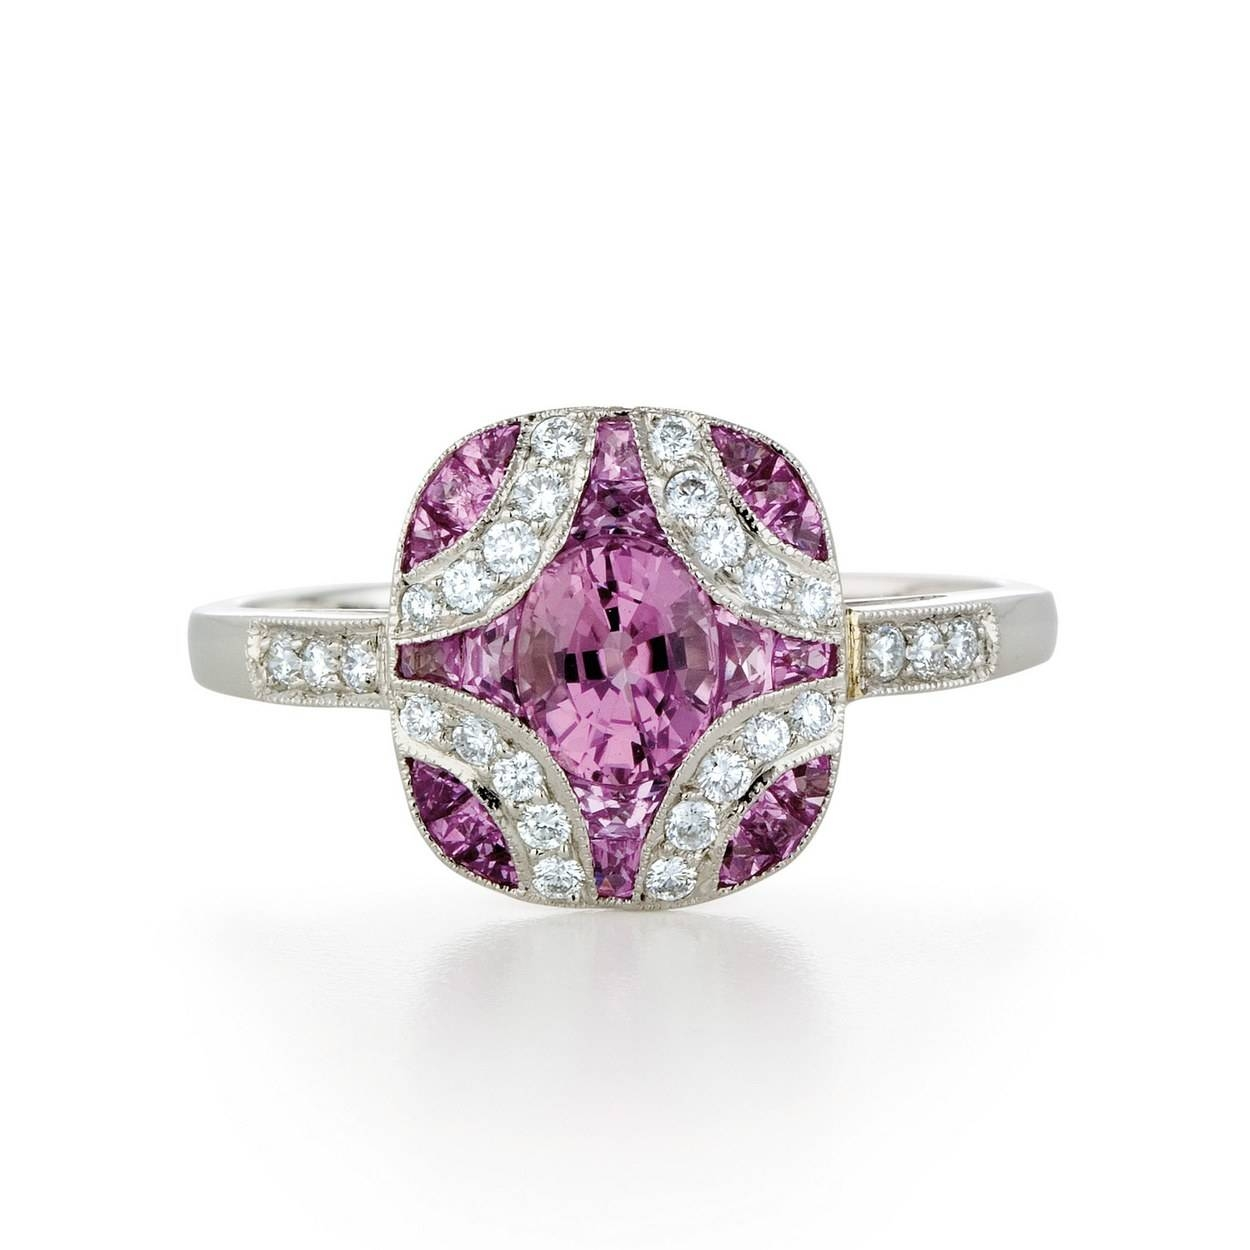 62 Diamond Engagement Rings Under $5,000 | Glamour In Pink Sapphire Engagement Rings With Diamonds (View 1 of 15)